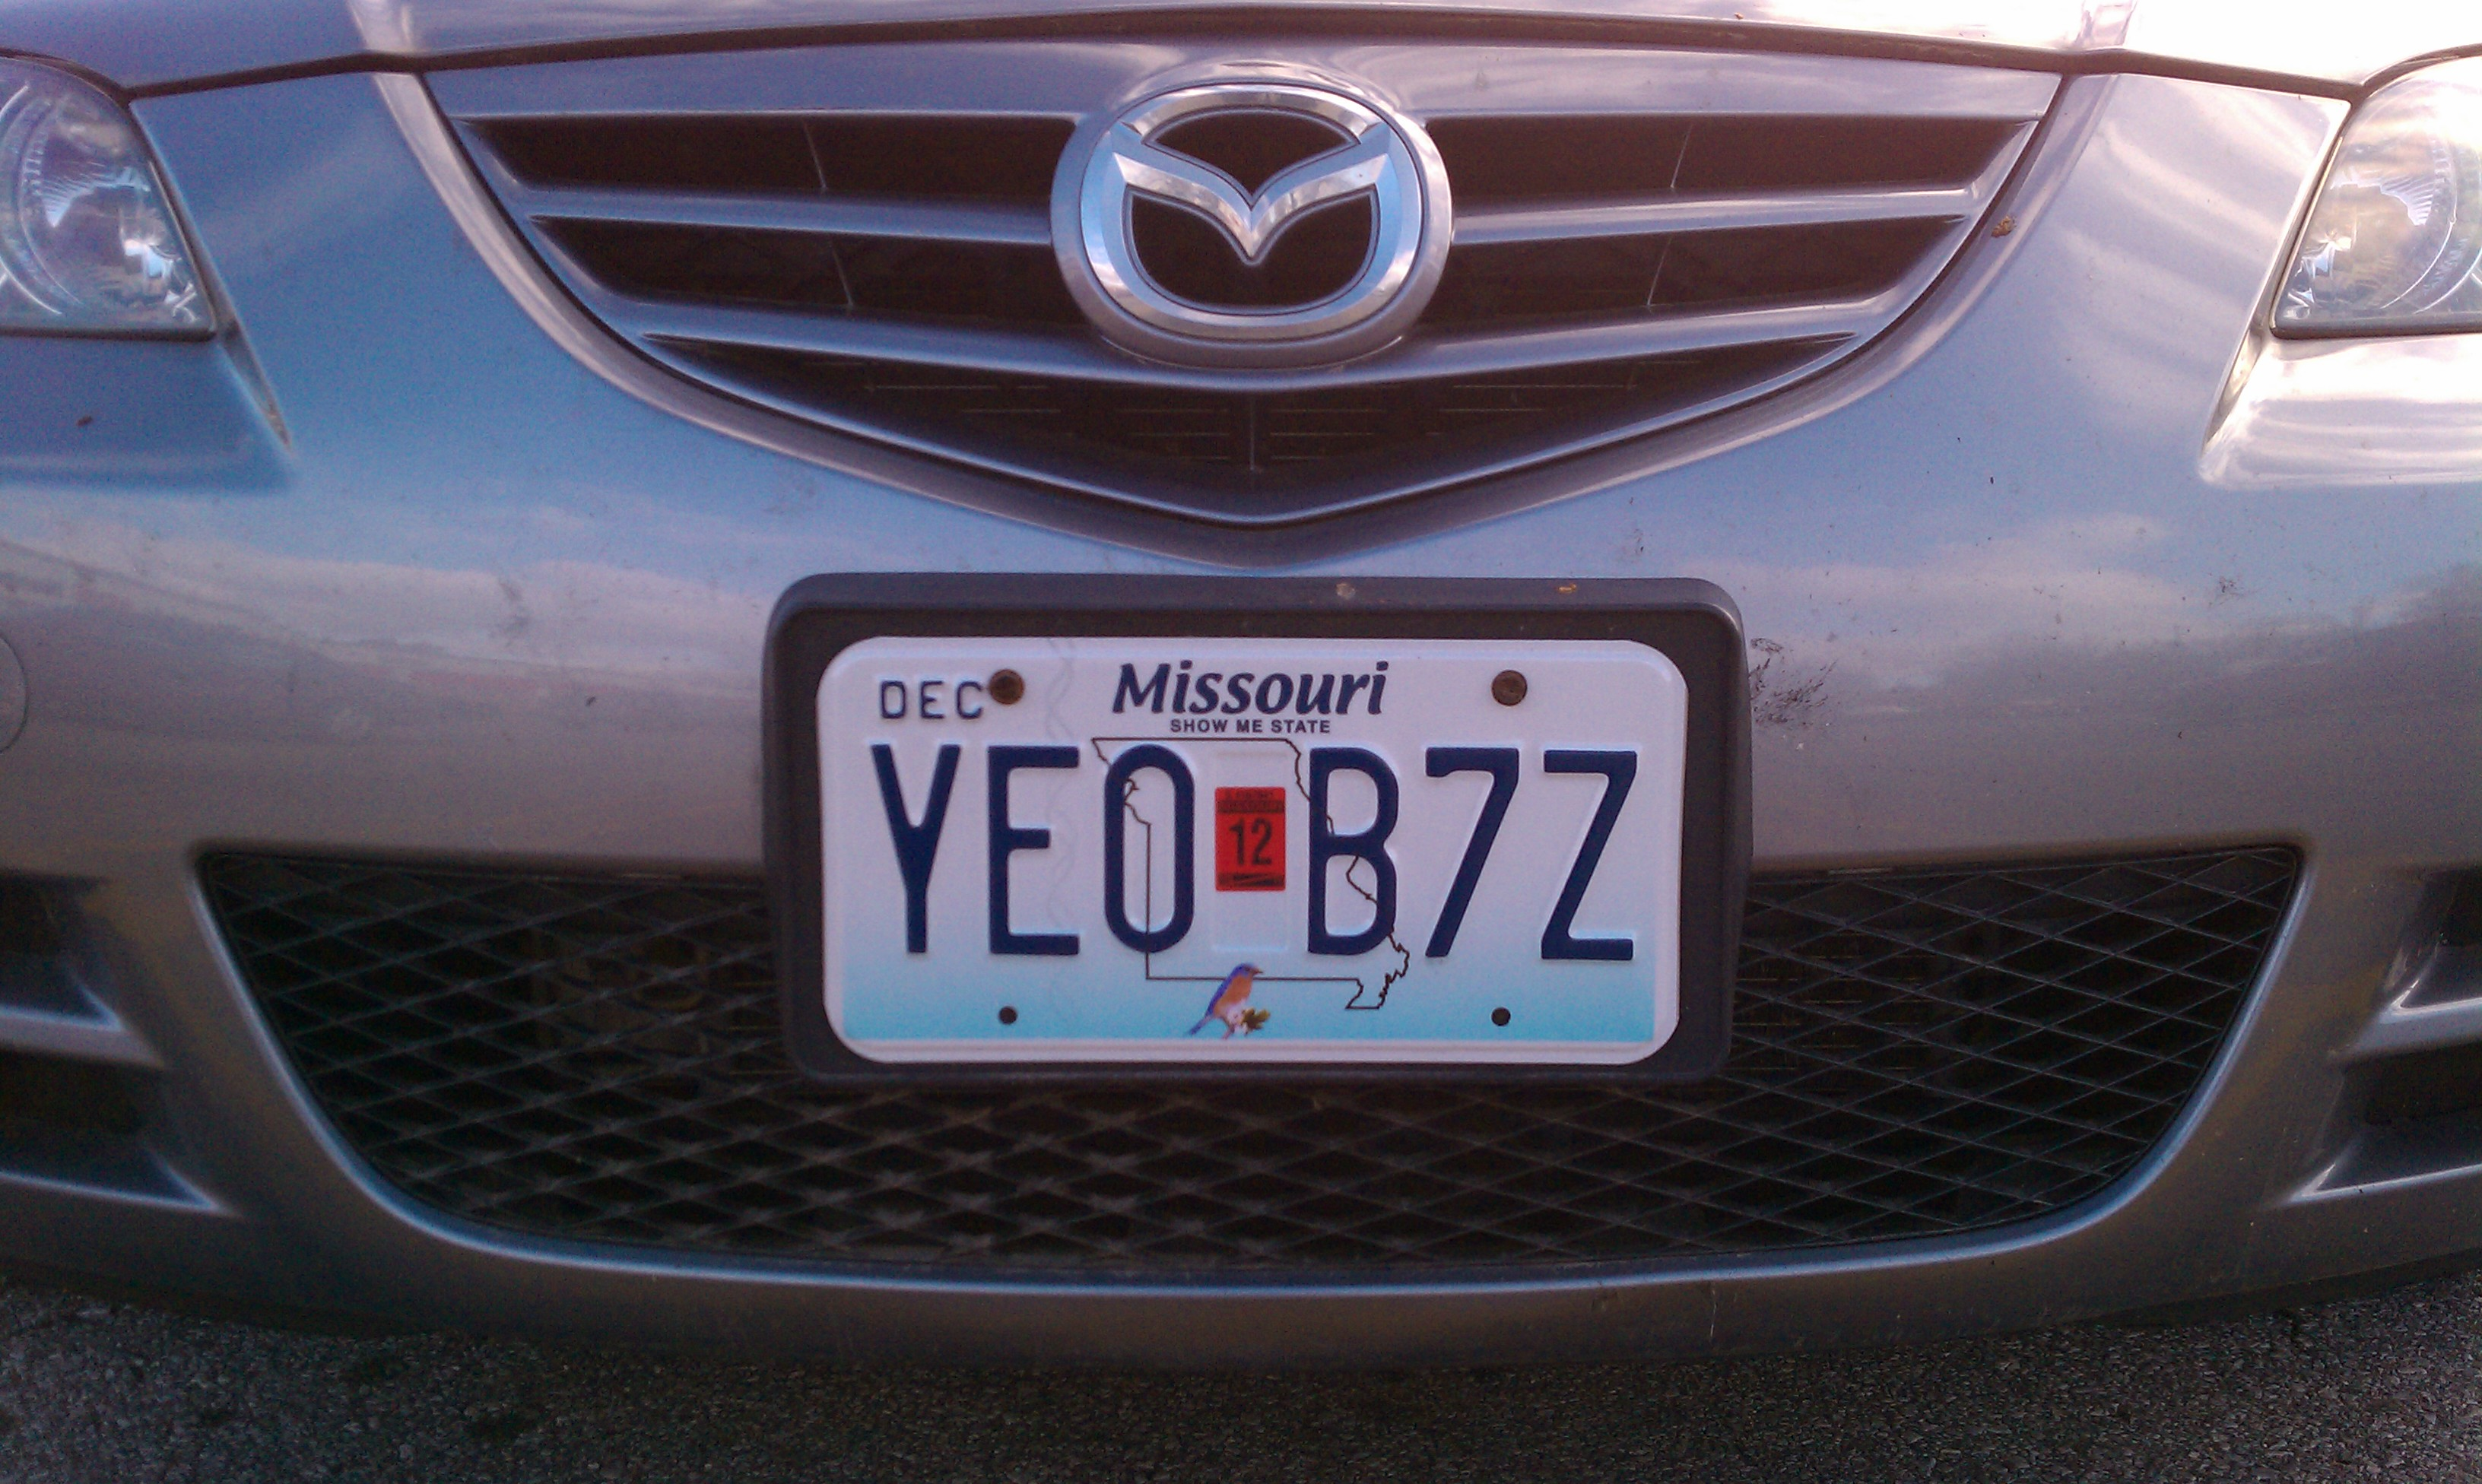 Yeo! Bzz off, tow truck - I\'m legal again.